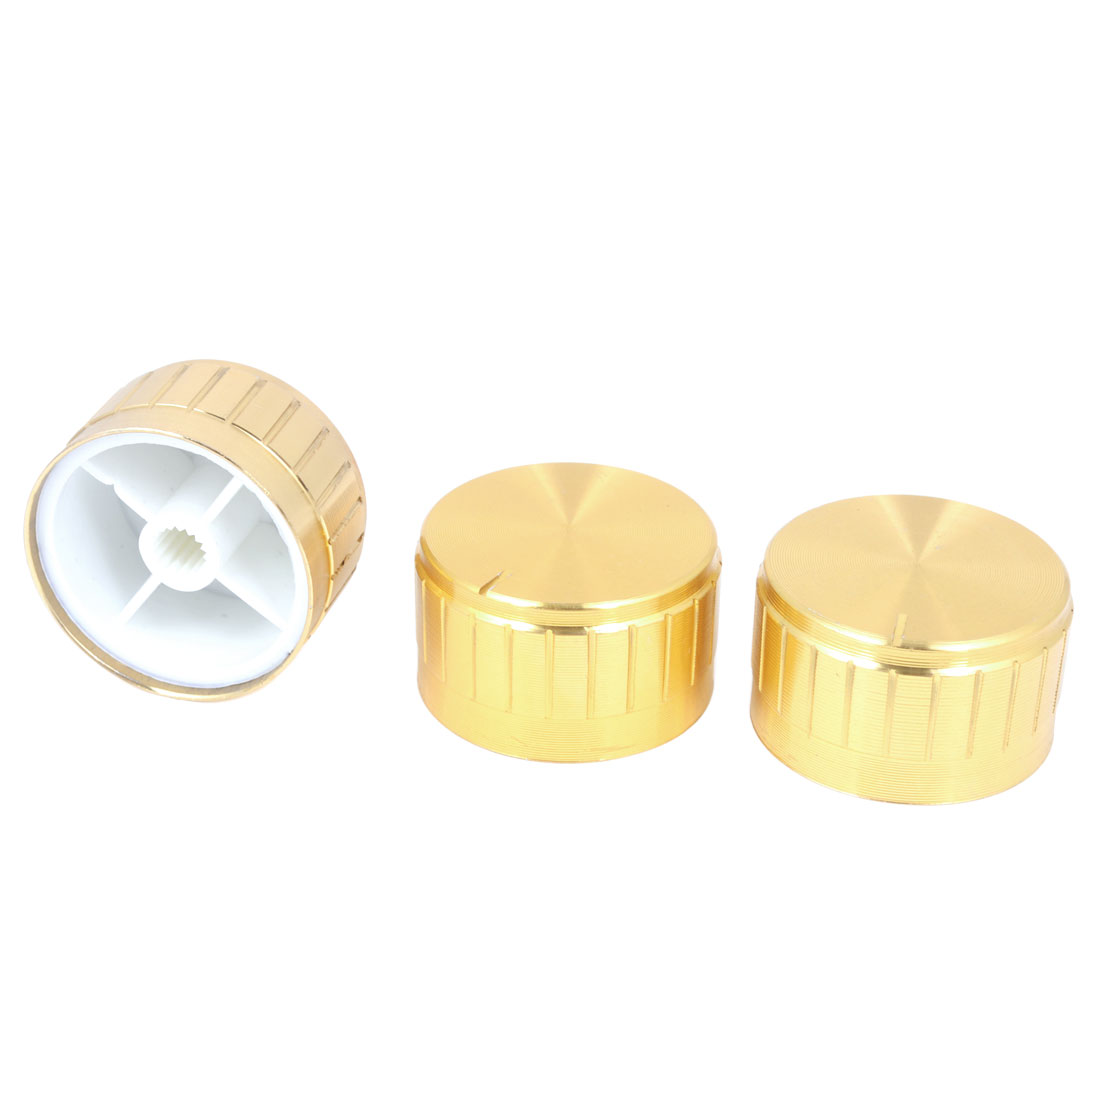 30mm x 17mm Gold Tone Aluminum Potentiometer Knobs 3 Pcs